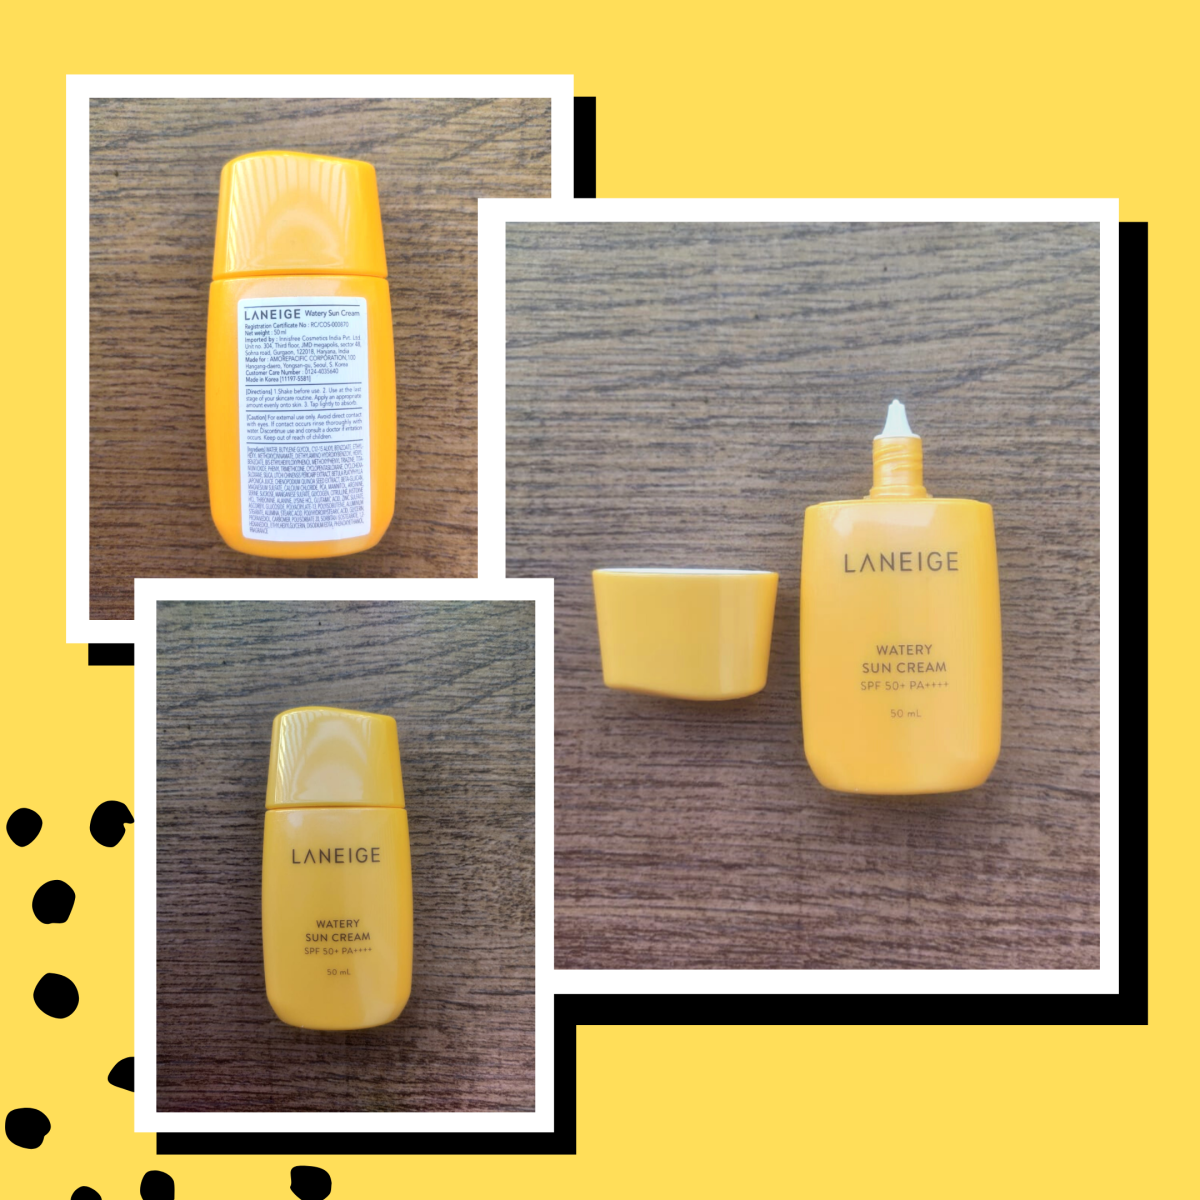 laneige-watery-sun-cream-spf-50-pa-review